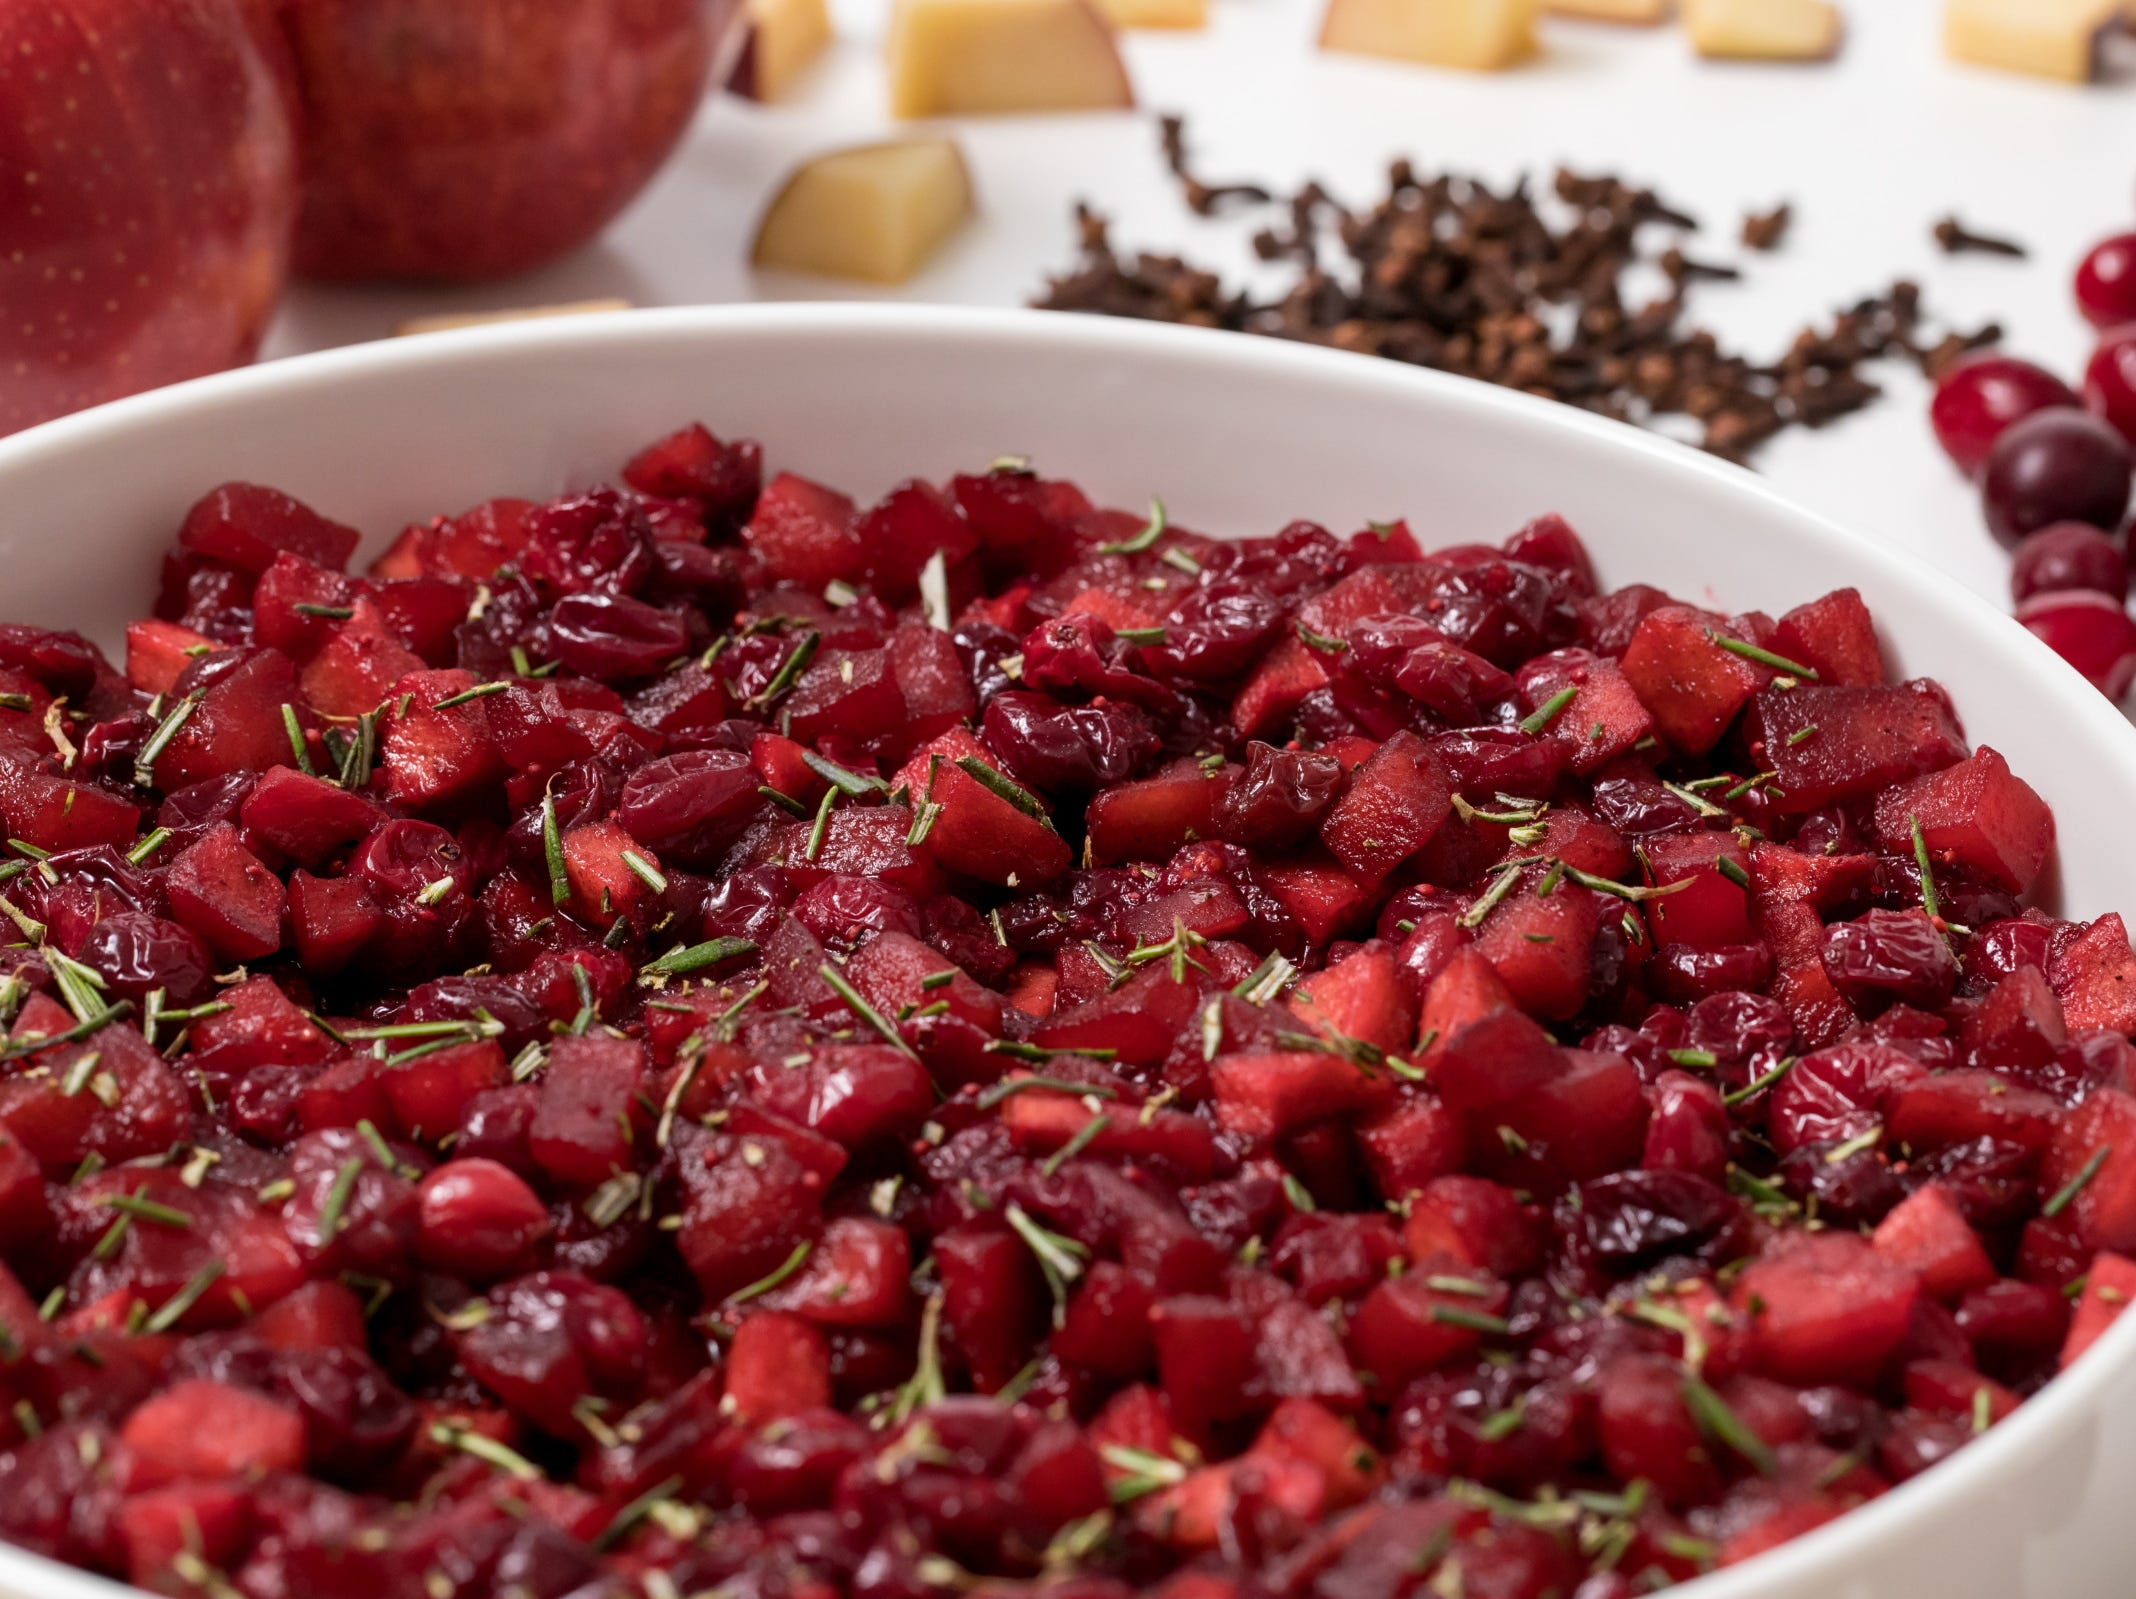 Craving a new twist on the traditional cranberry sauce for your Thanksgiving table? Try this roasted apple cranberry relish, inspired by Budget Bytes, and watch your family and friends go wild for this spicy, jammy holiday condiment.